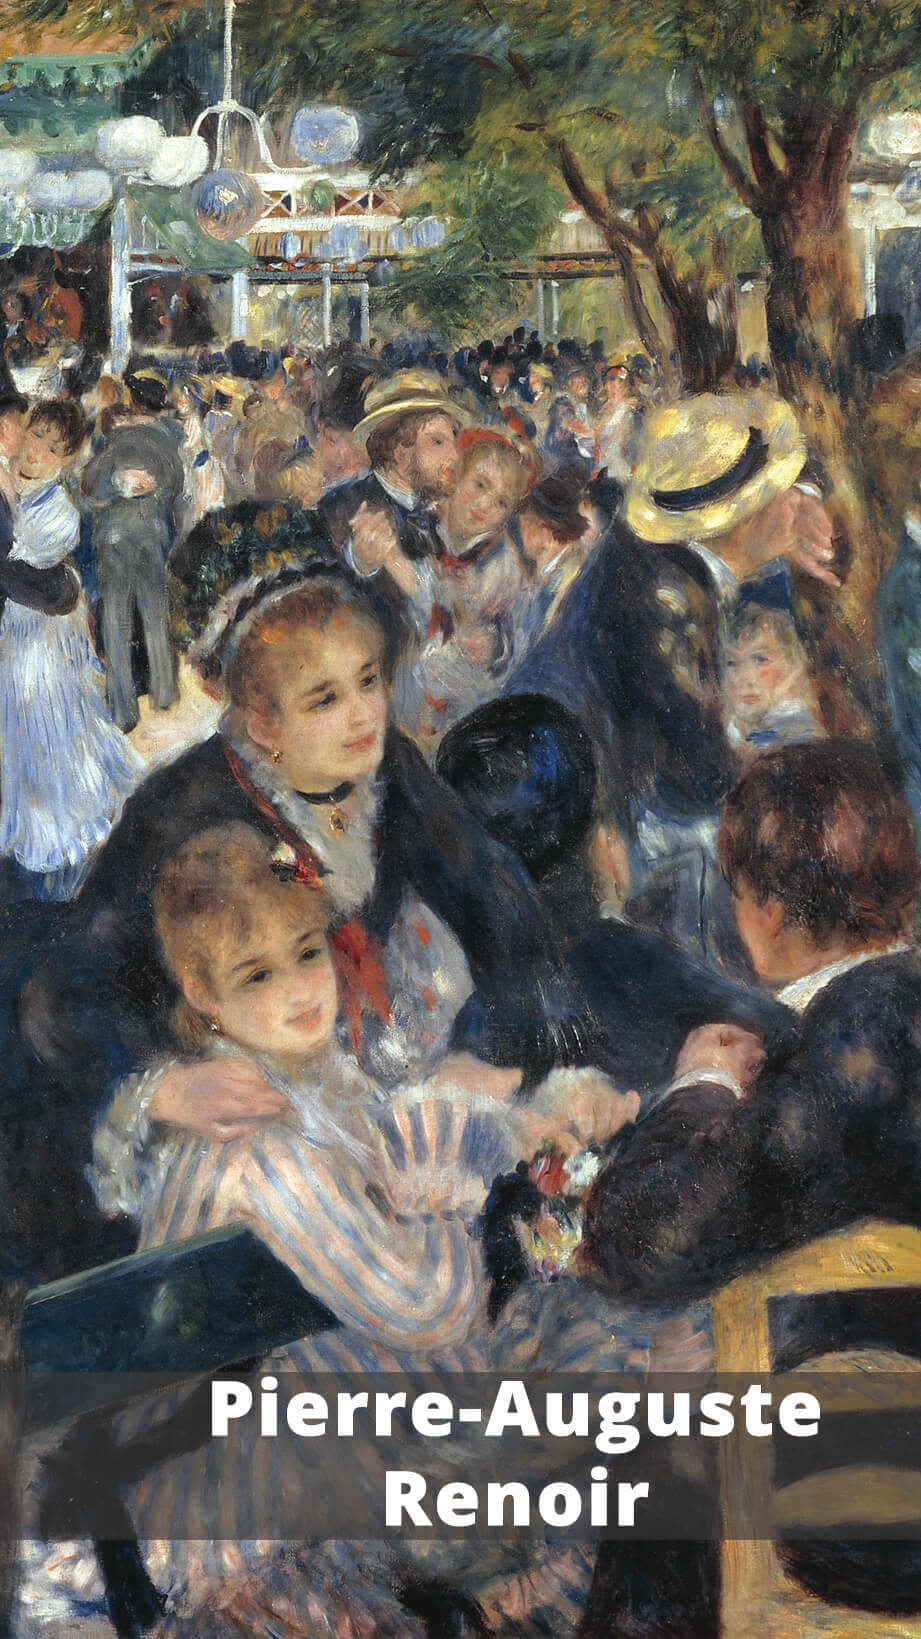 Pierre-Auguste Renoir (1841-1919) was an important member of the #Impressionist movement. #arthistory #K12 #resources #curriculum